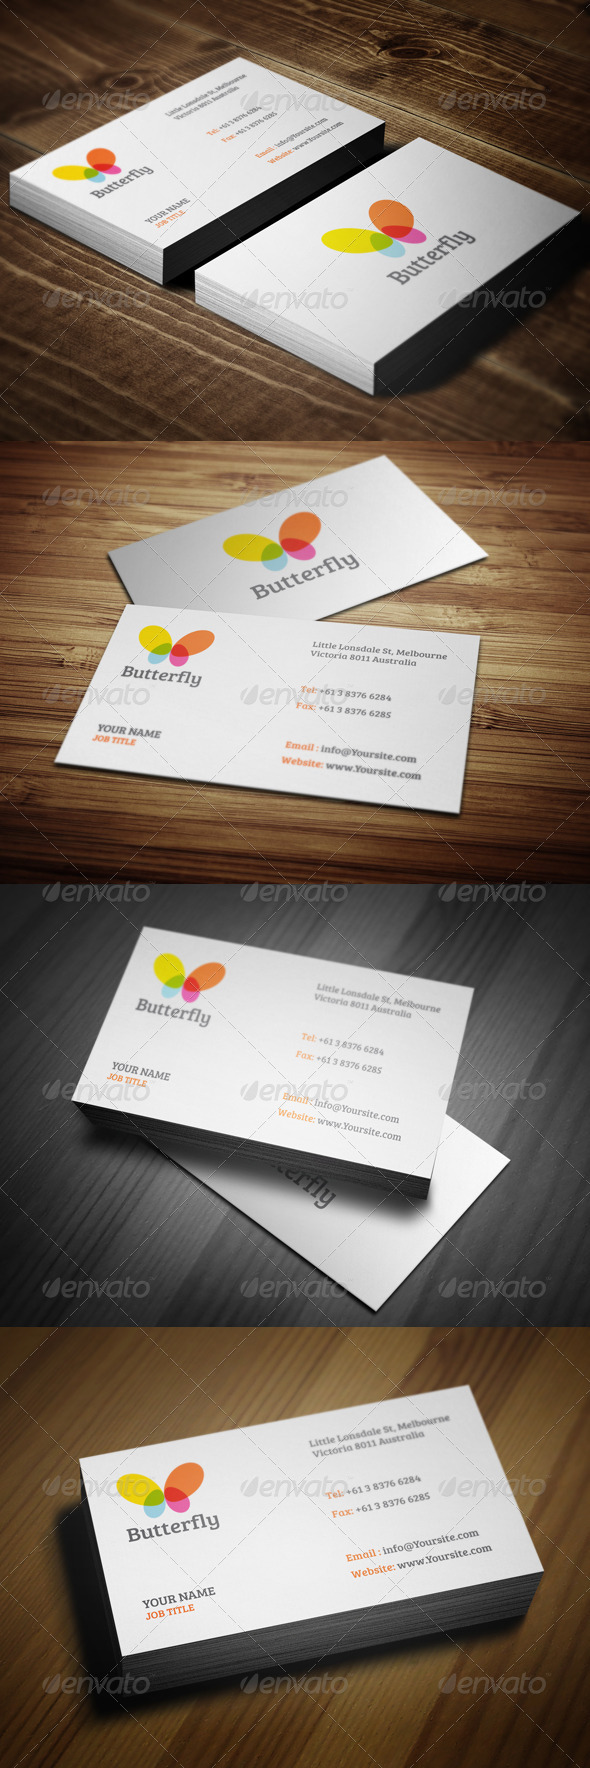 Butterfly Business Cards   Stationery design   Pinterest   Business ...